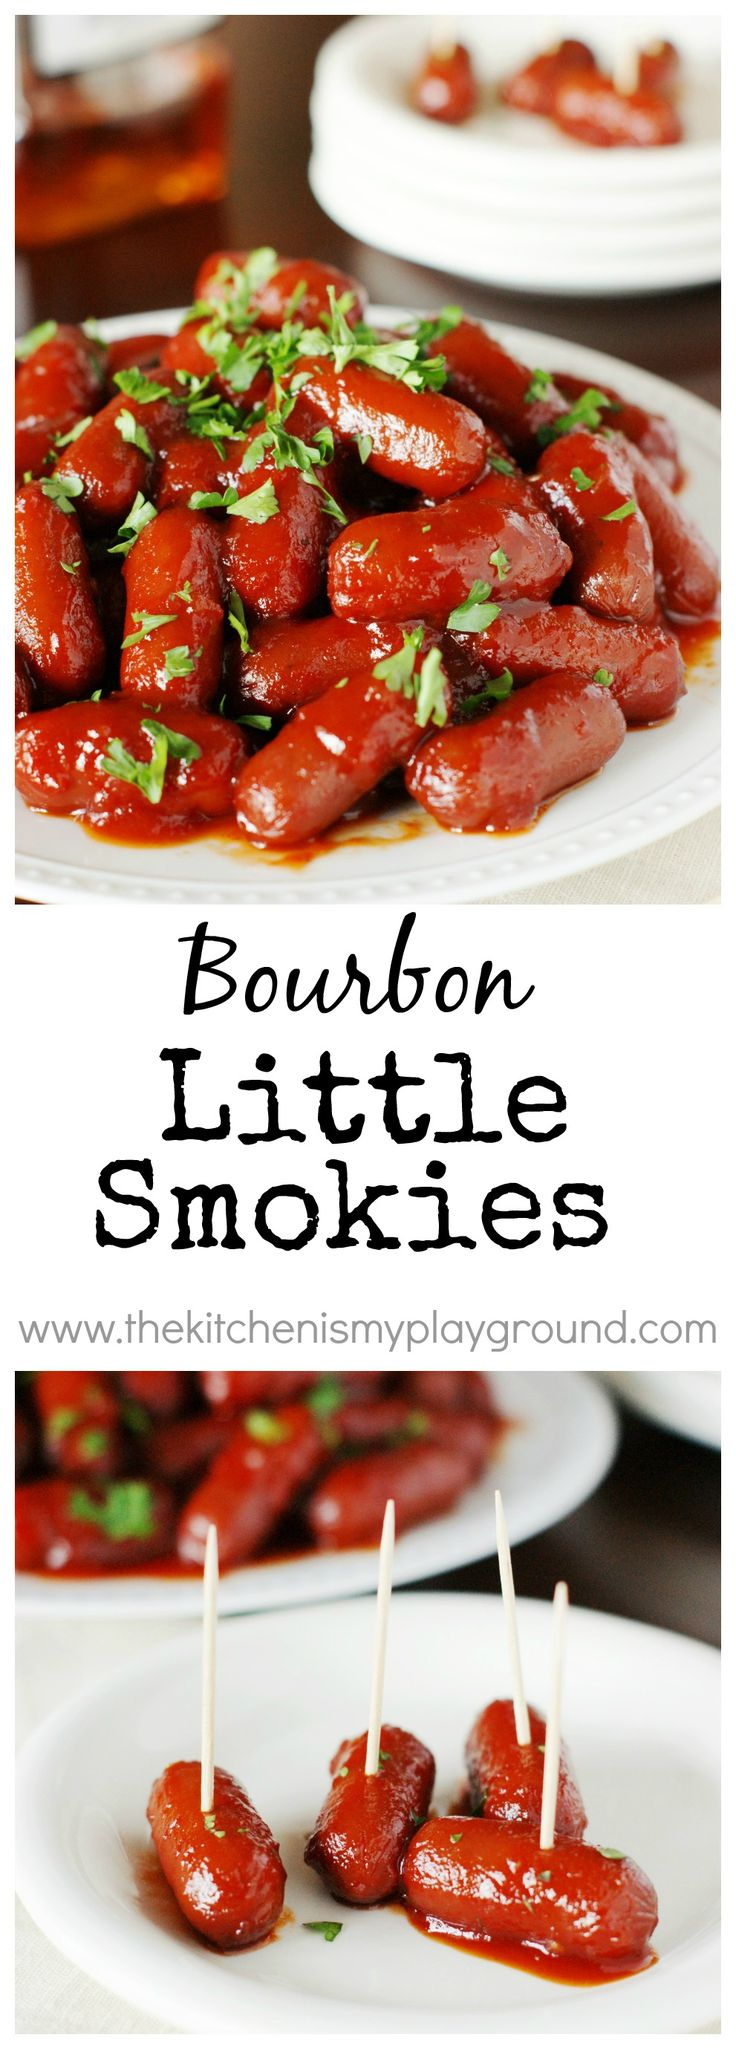 Bourbon Little Smokies ~ party-perfect!  Simmer on the stove top or in a crockpot. #gameday #gamedayfood #Bourbon #littlesmokies #crockpotrecipes #partyfood www.thekitchenismyplayground.com